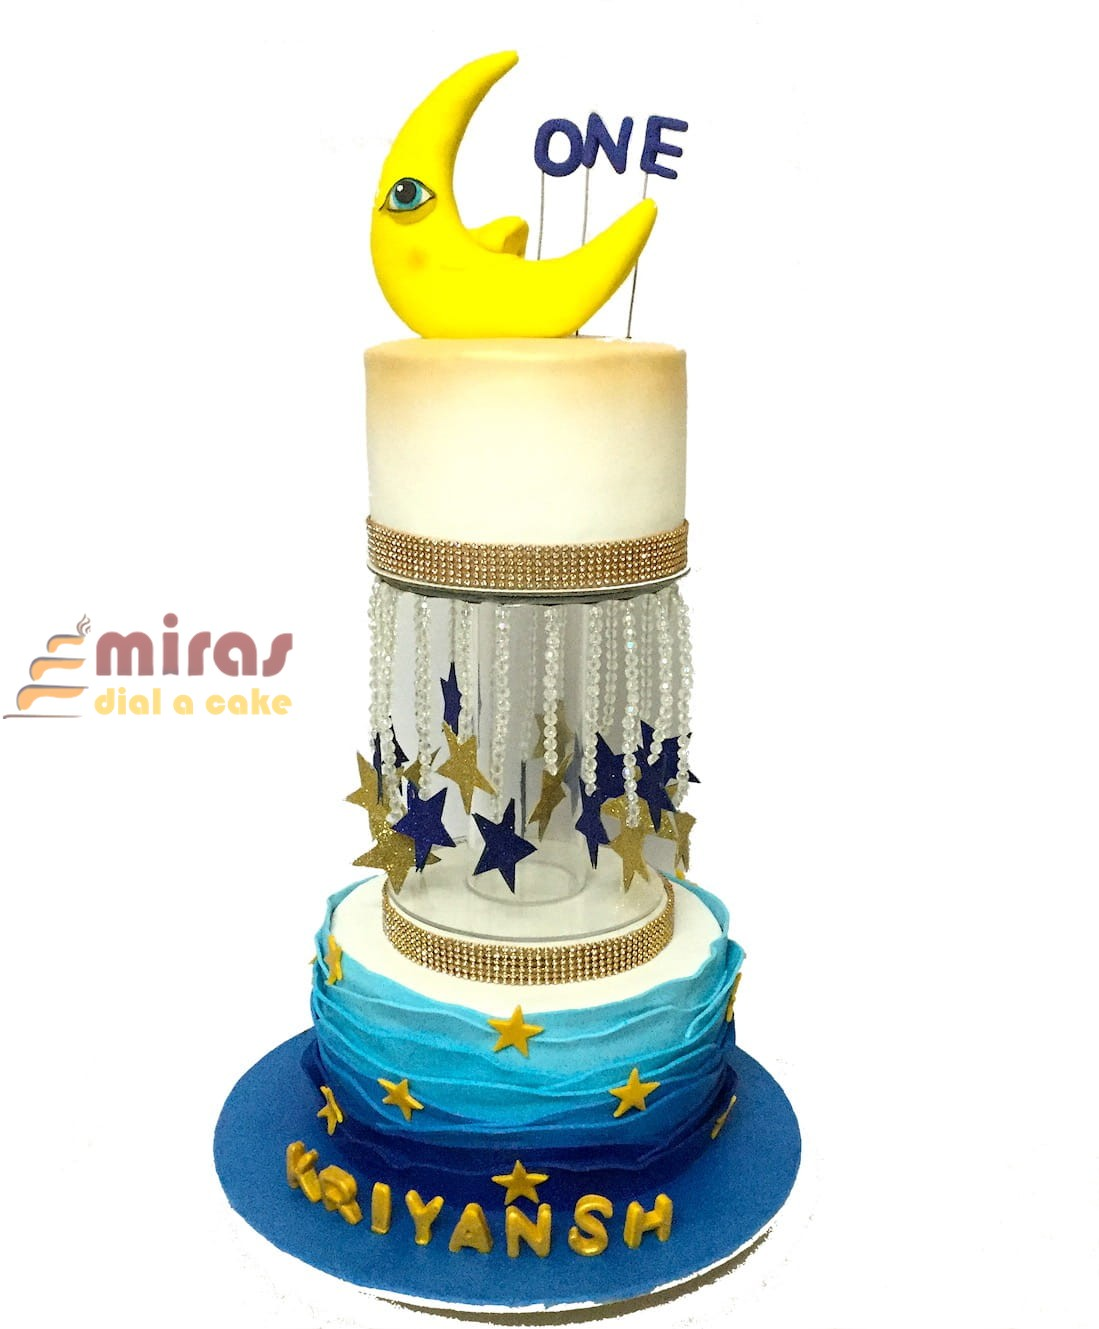 Online Sun Moon Theme 1st Birthday Cake Online Birthday Cakes For Kids Bangalore Delivery Best Cakes Near Me L Miras